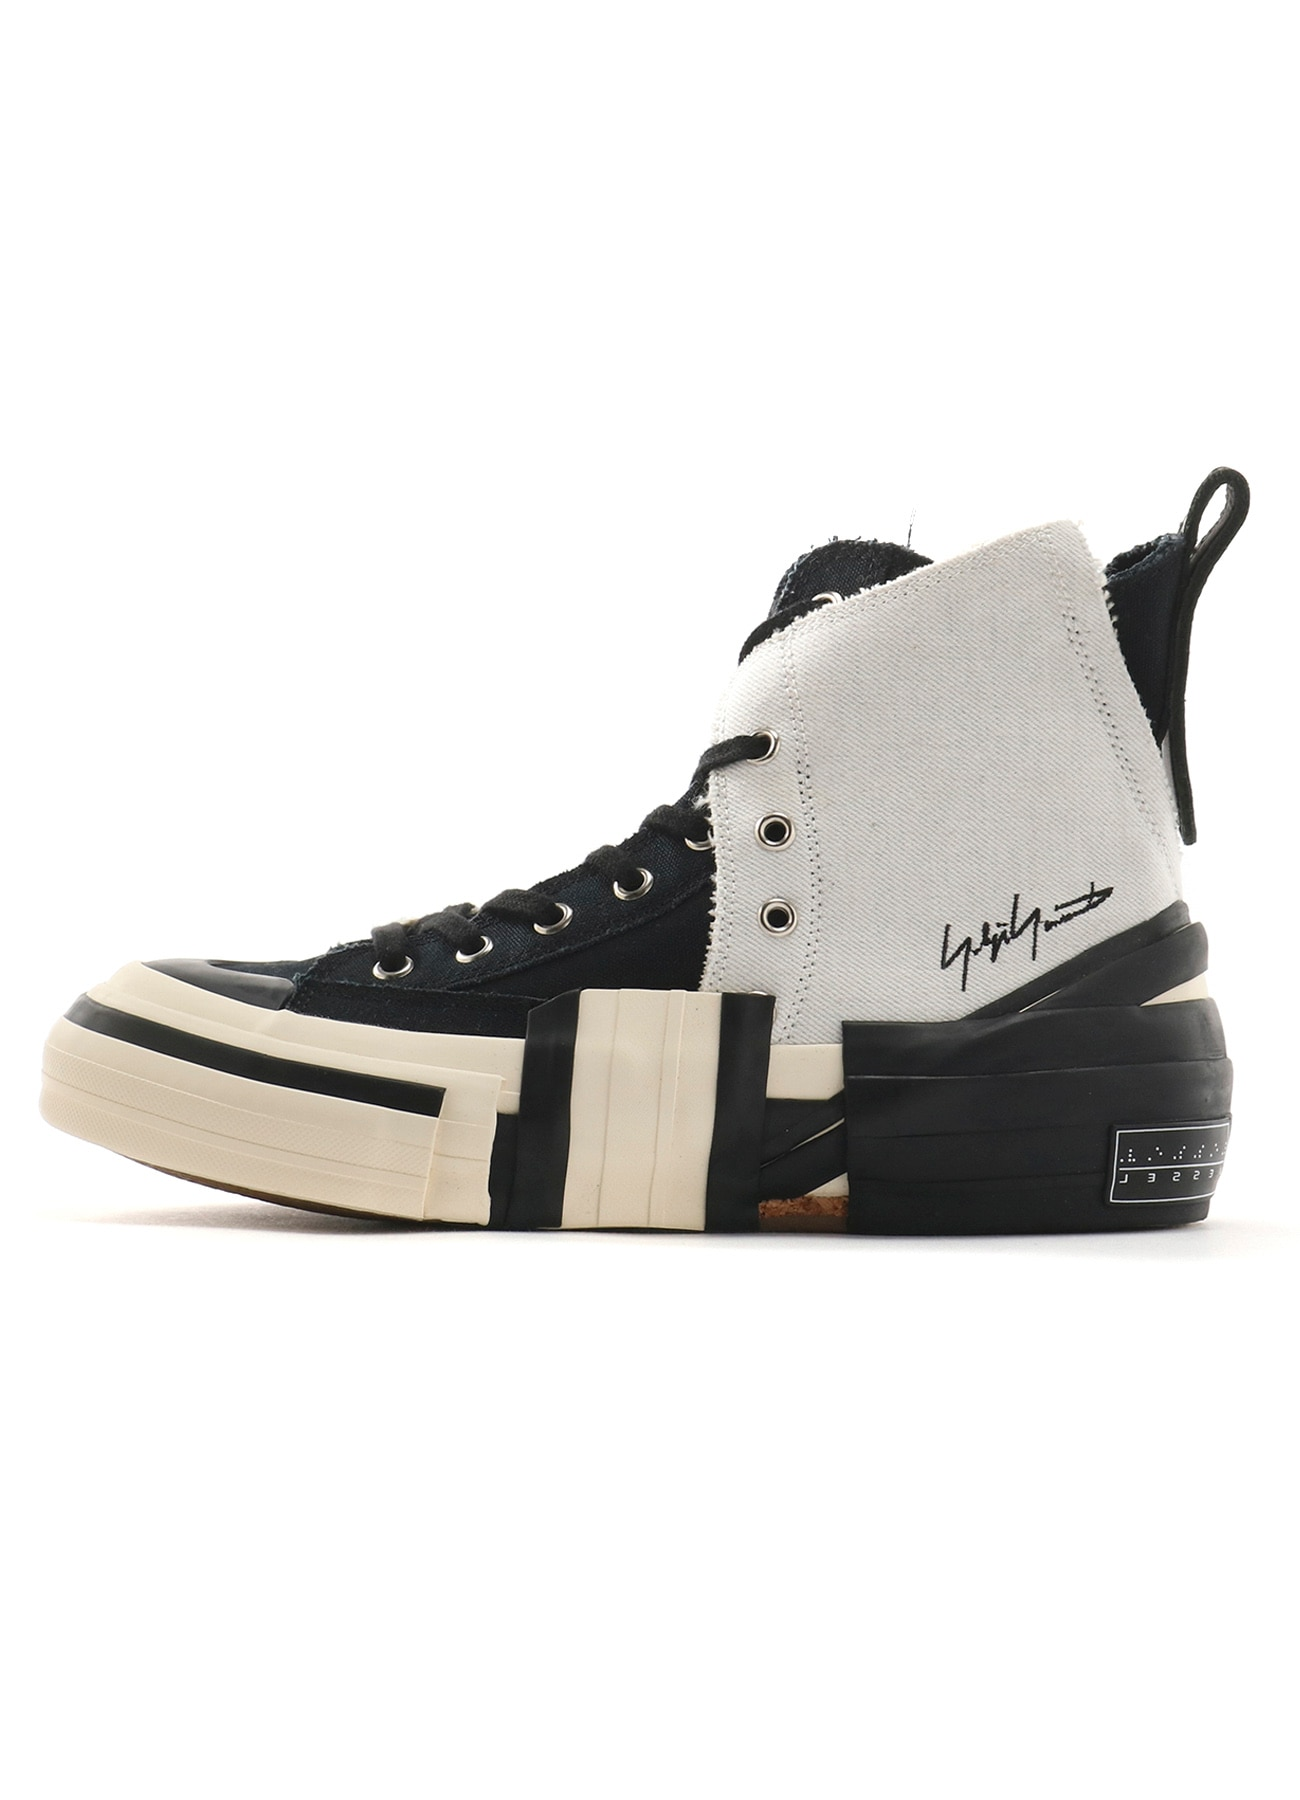 Yohji Yamamoto × VESSEL C/SNOW DENIM LAYERED HIGH TOP SNEAKERS WHT